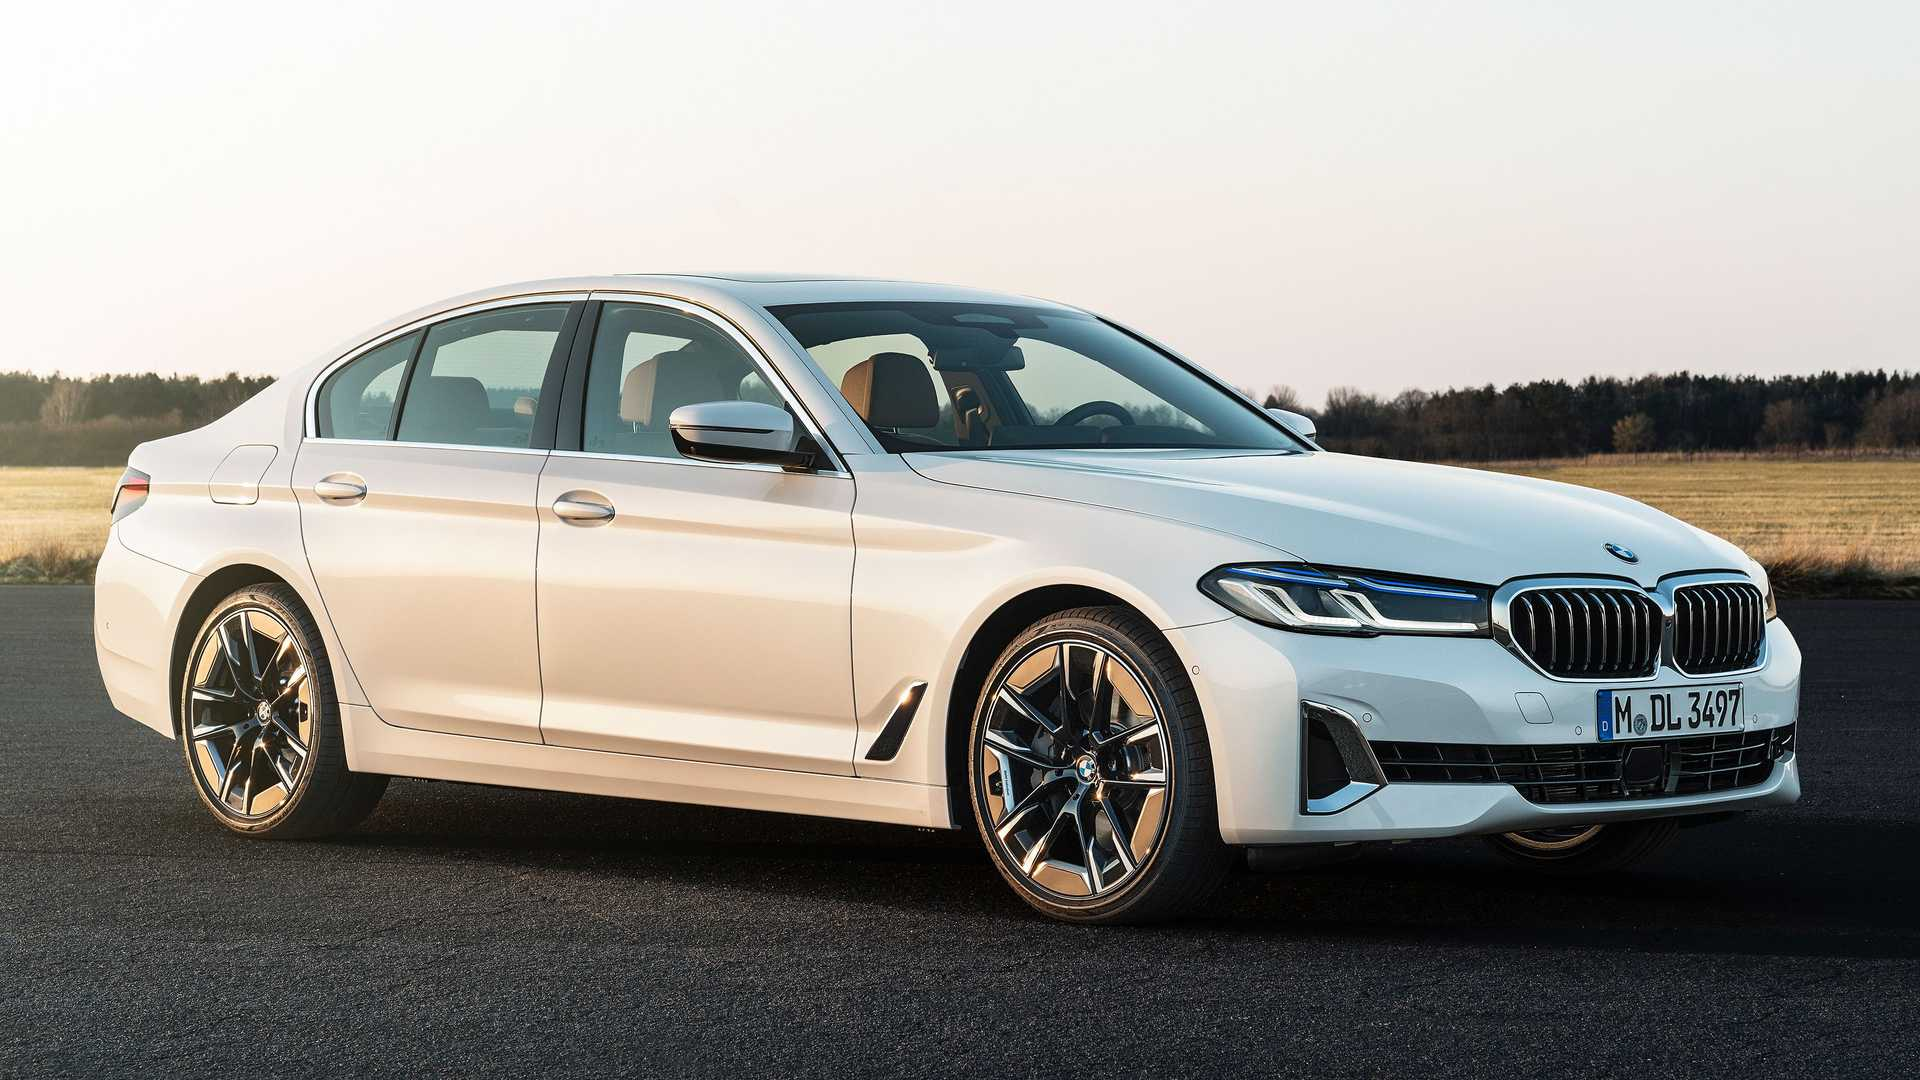 Bmw 5 Series News And Reviews Motor1 Com